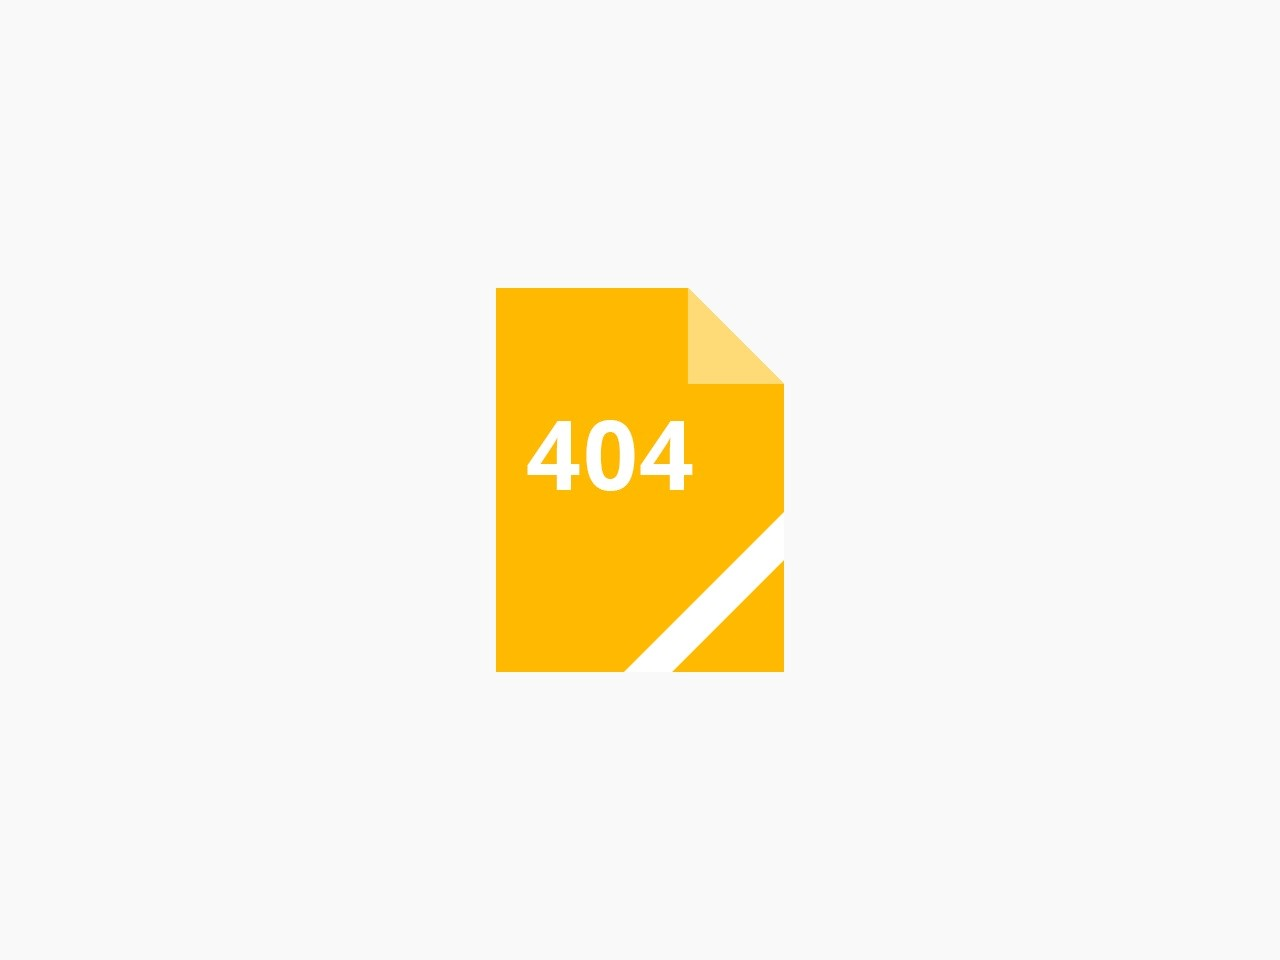 Coinbase is a huge net positive for not just cryptocurrencies, but for the world, says Bitcoin Cash proponent Roger Ver